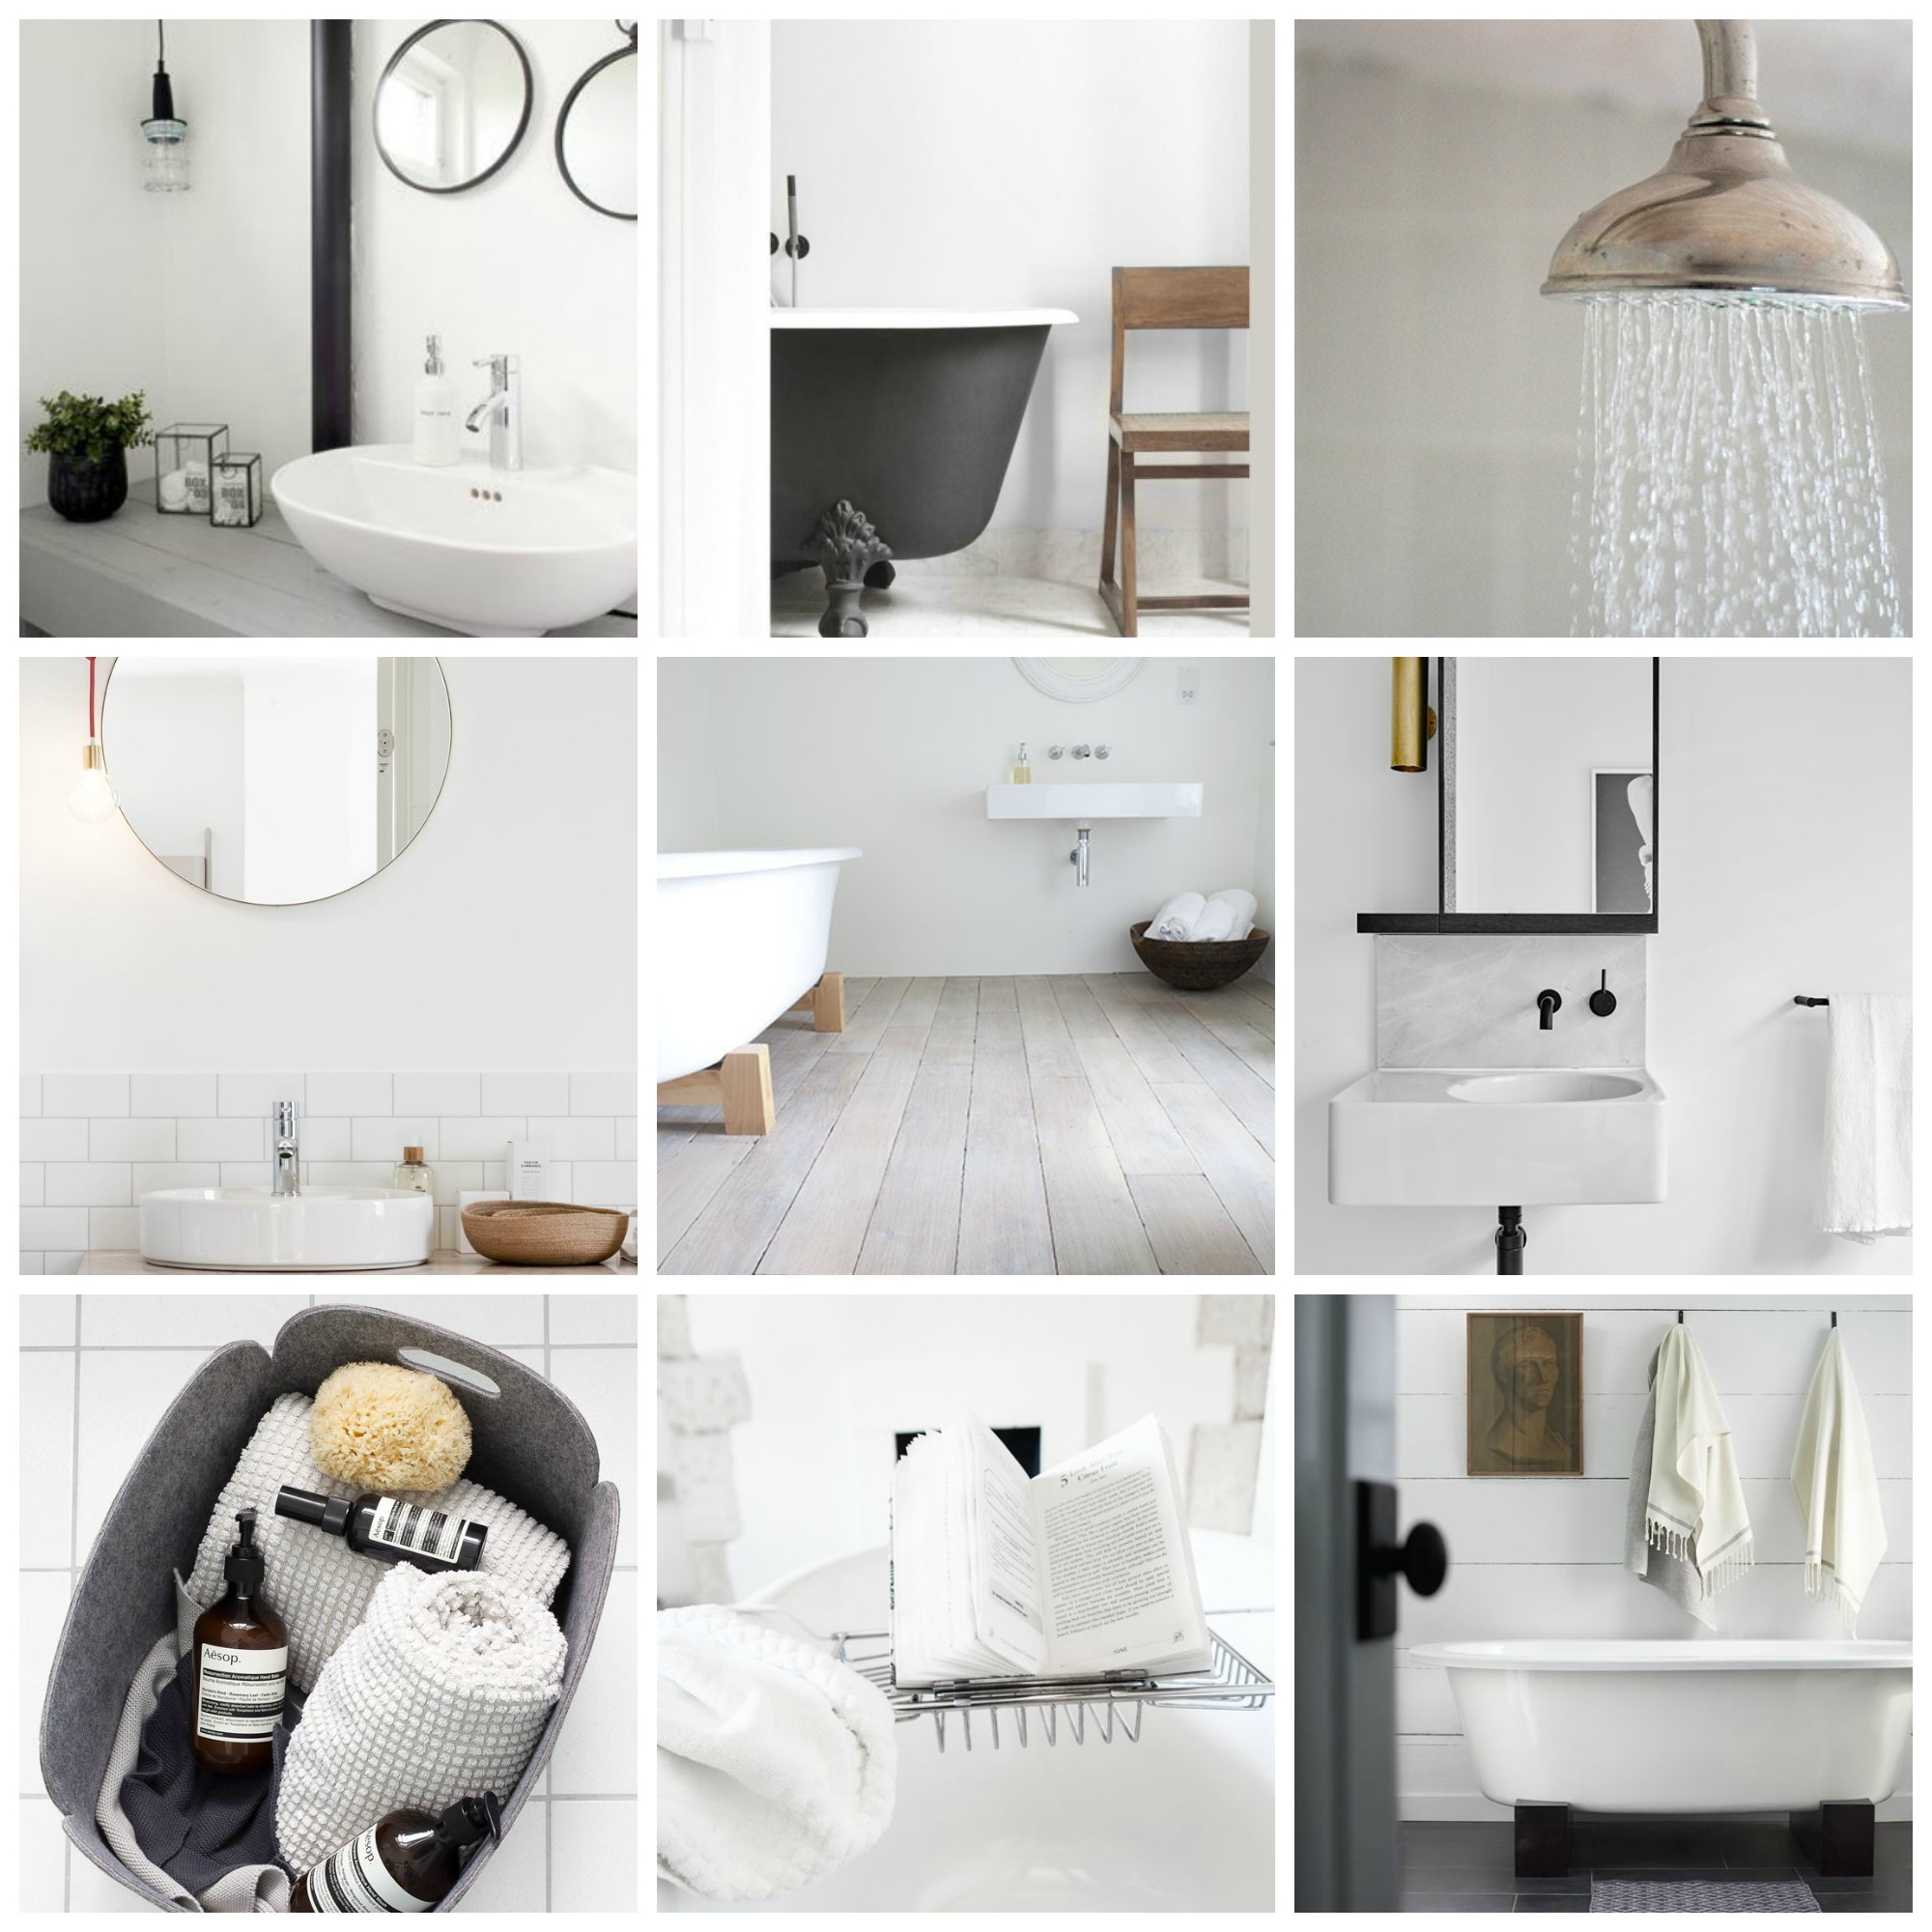 anetteshus-bathroom-collage